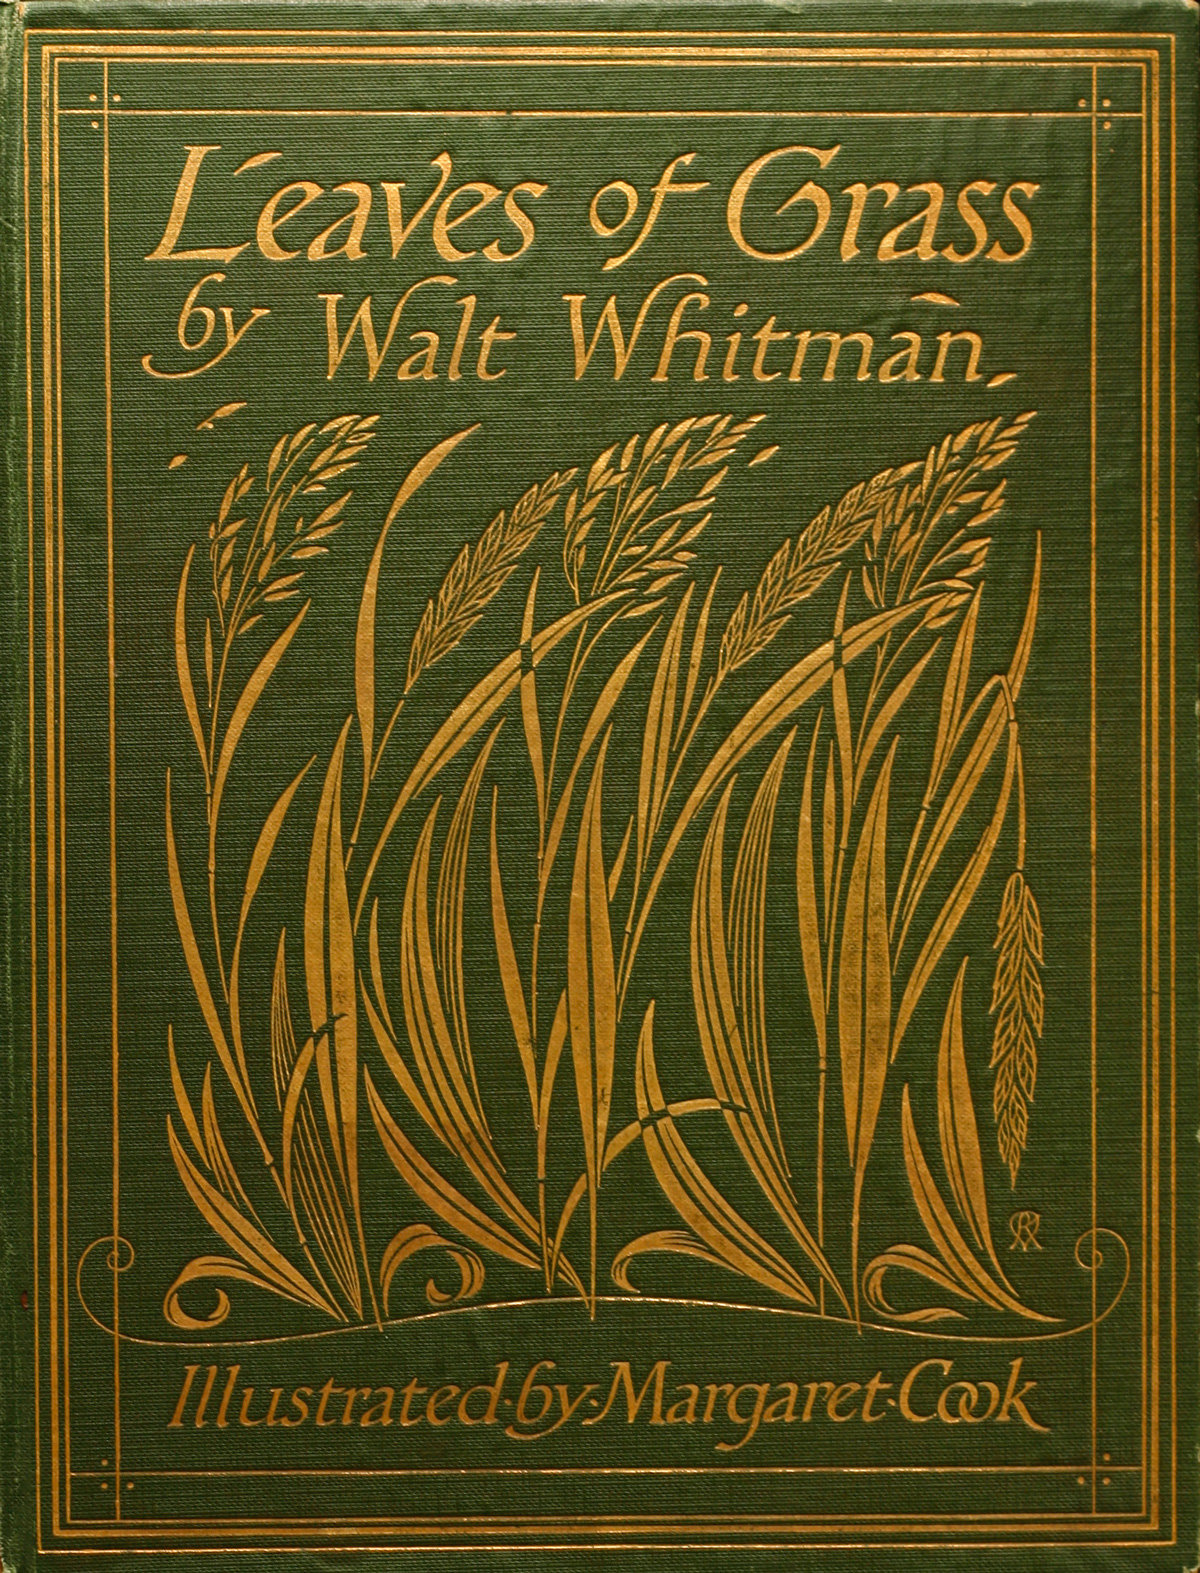 Stunning, Sensual Illustrations for a Rare 1913 Edition of Walt Whitman's 'Leaves of Grass' by English Artist Margaret C. Cook